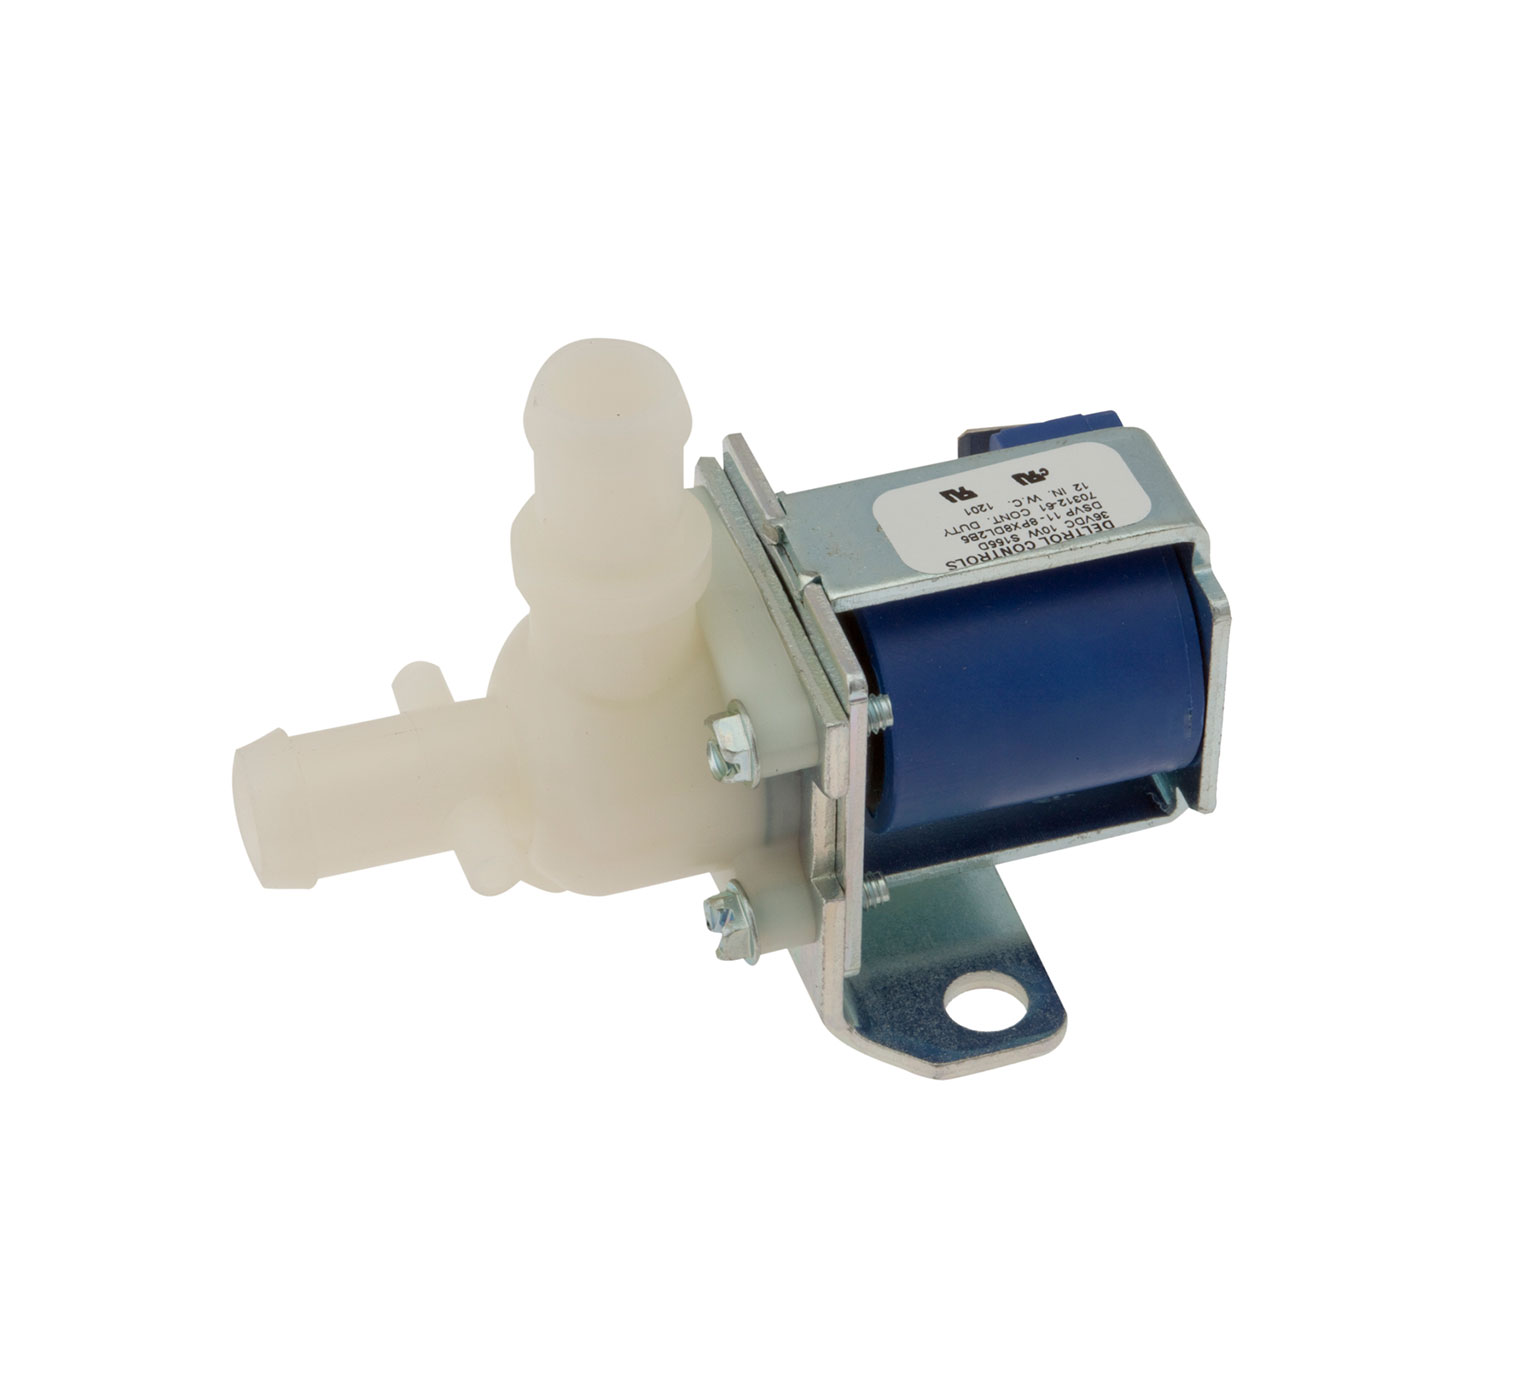 Solution Valve - 24 Volt Fixed Replaces Windsor Saber 84141